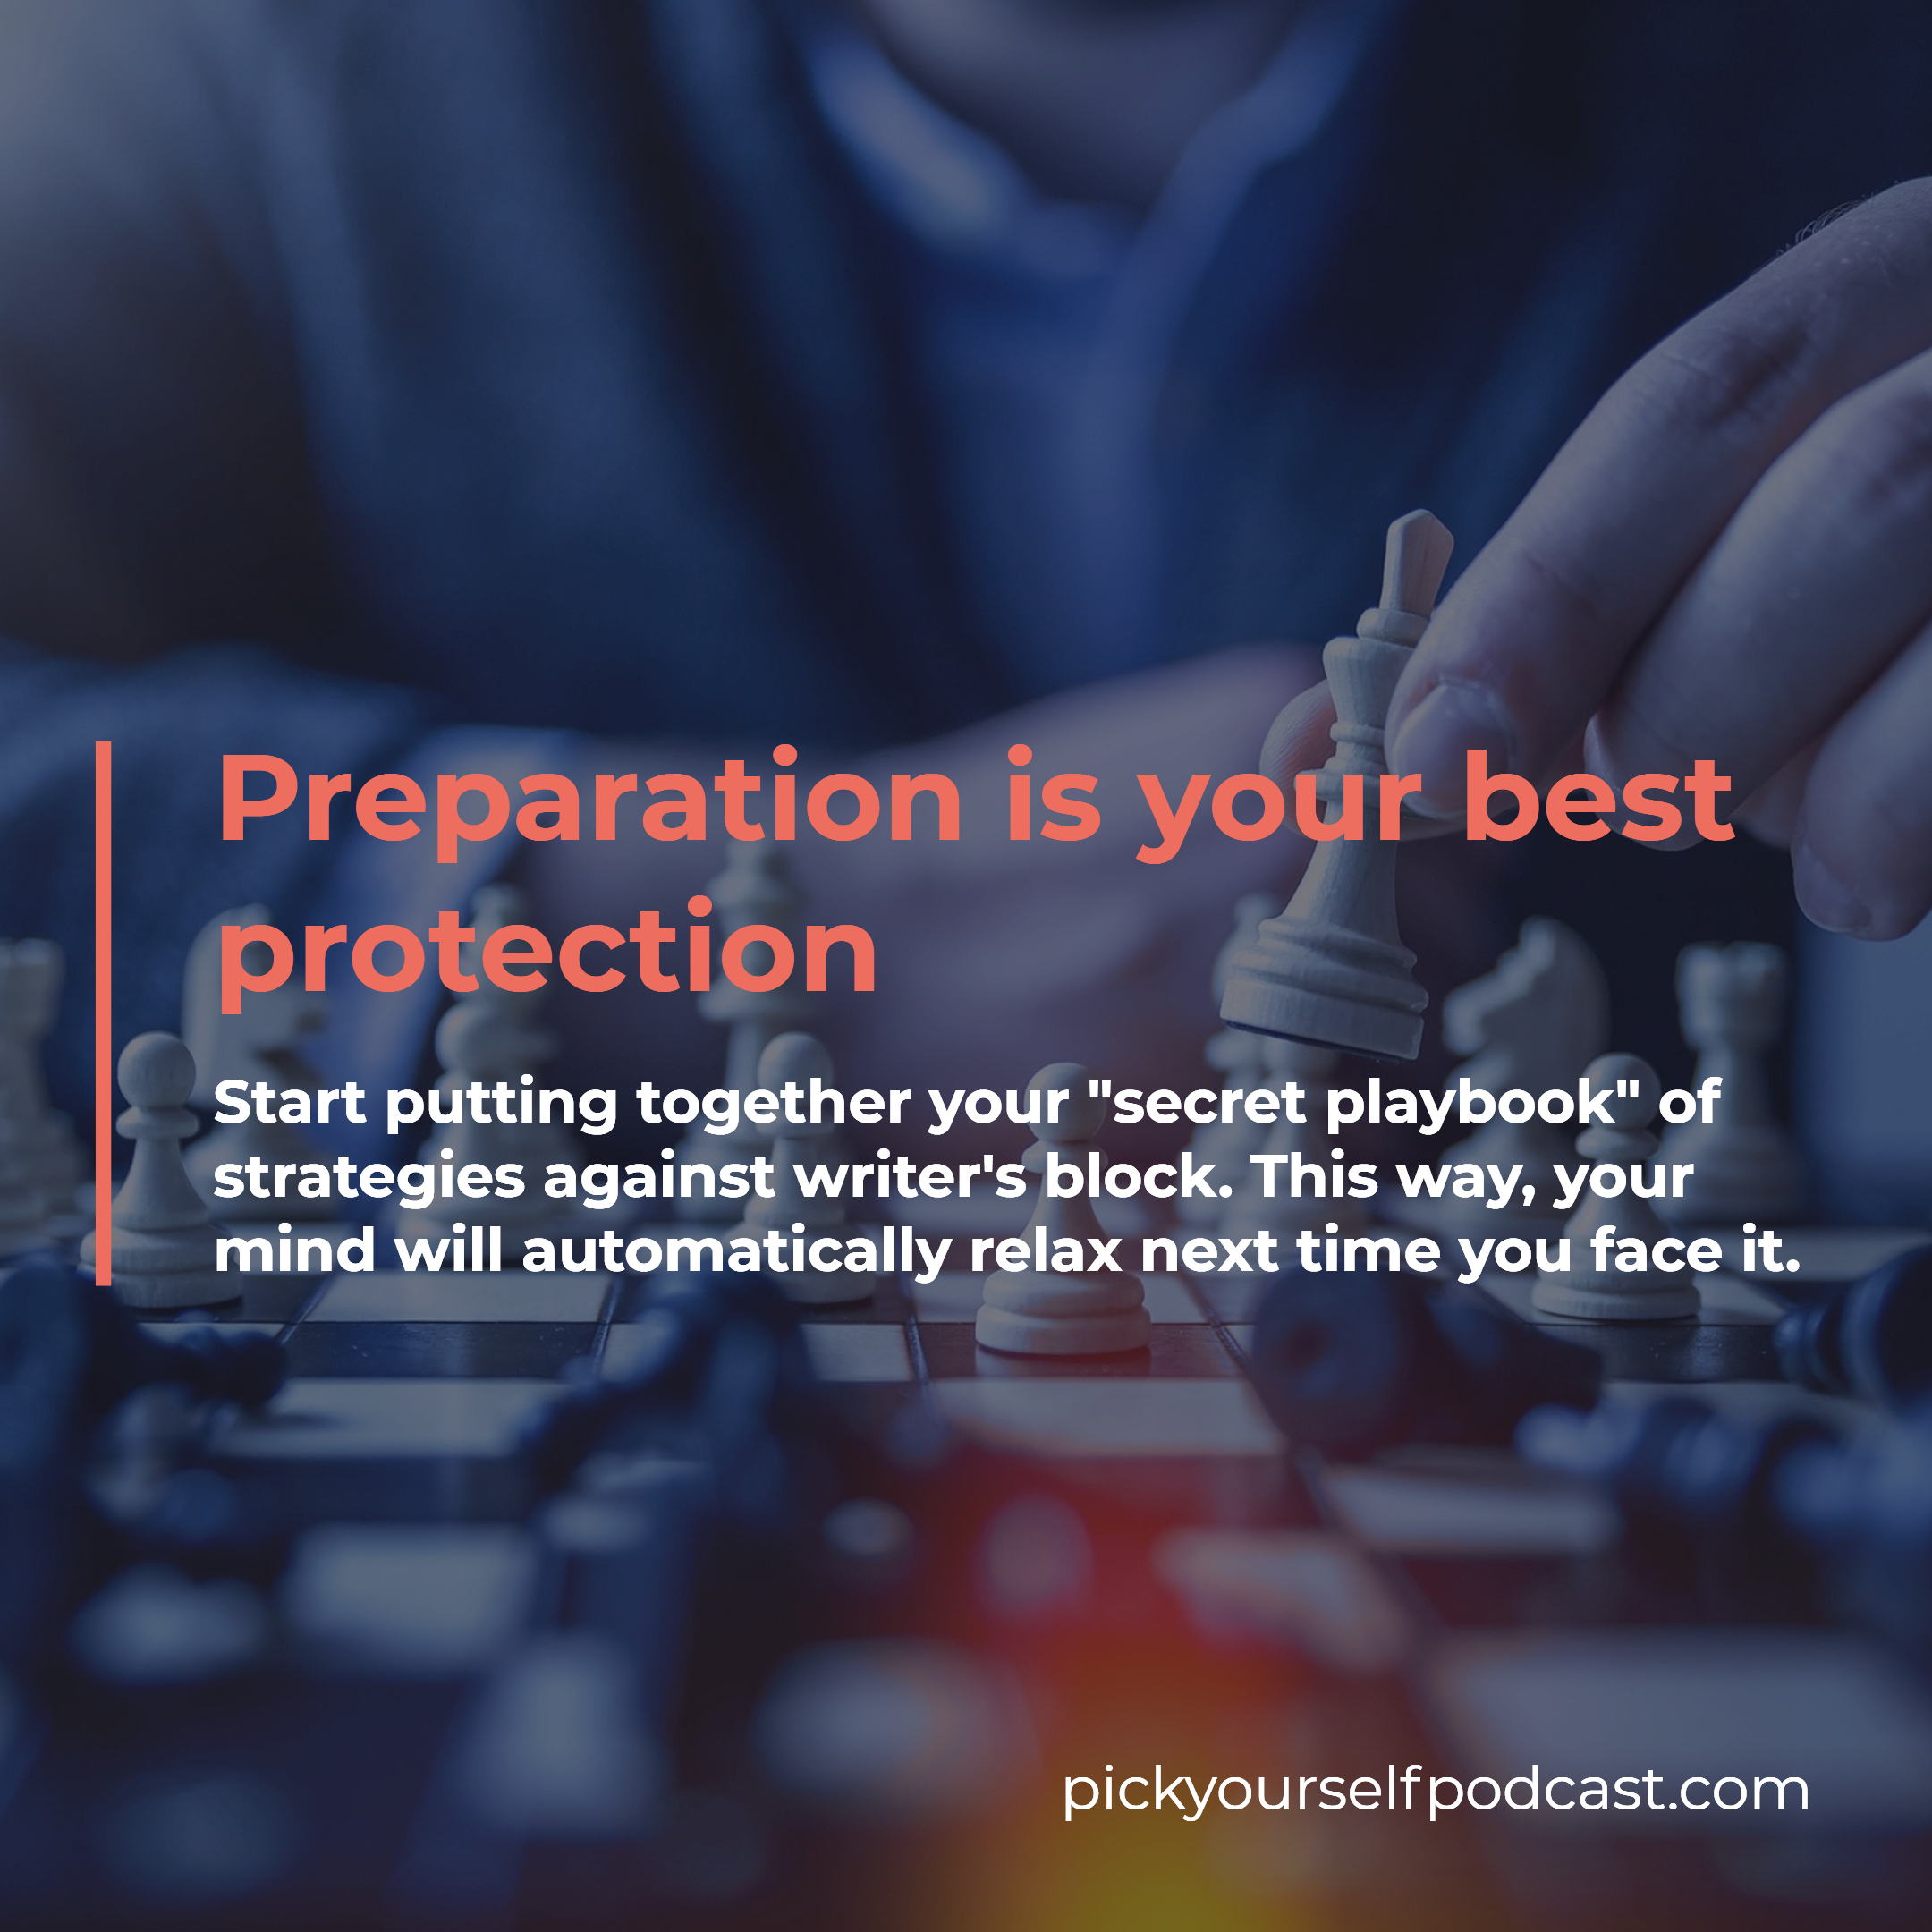 If you want to overcome writer's block, preparation is the best protection.